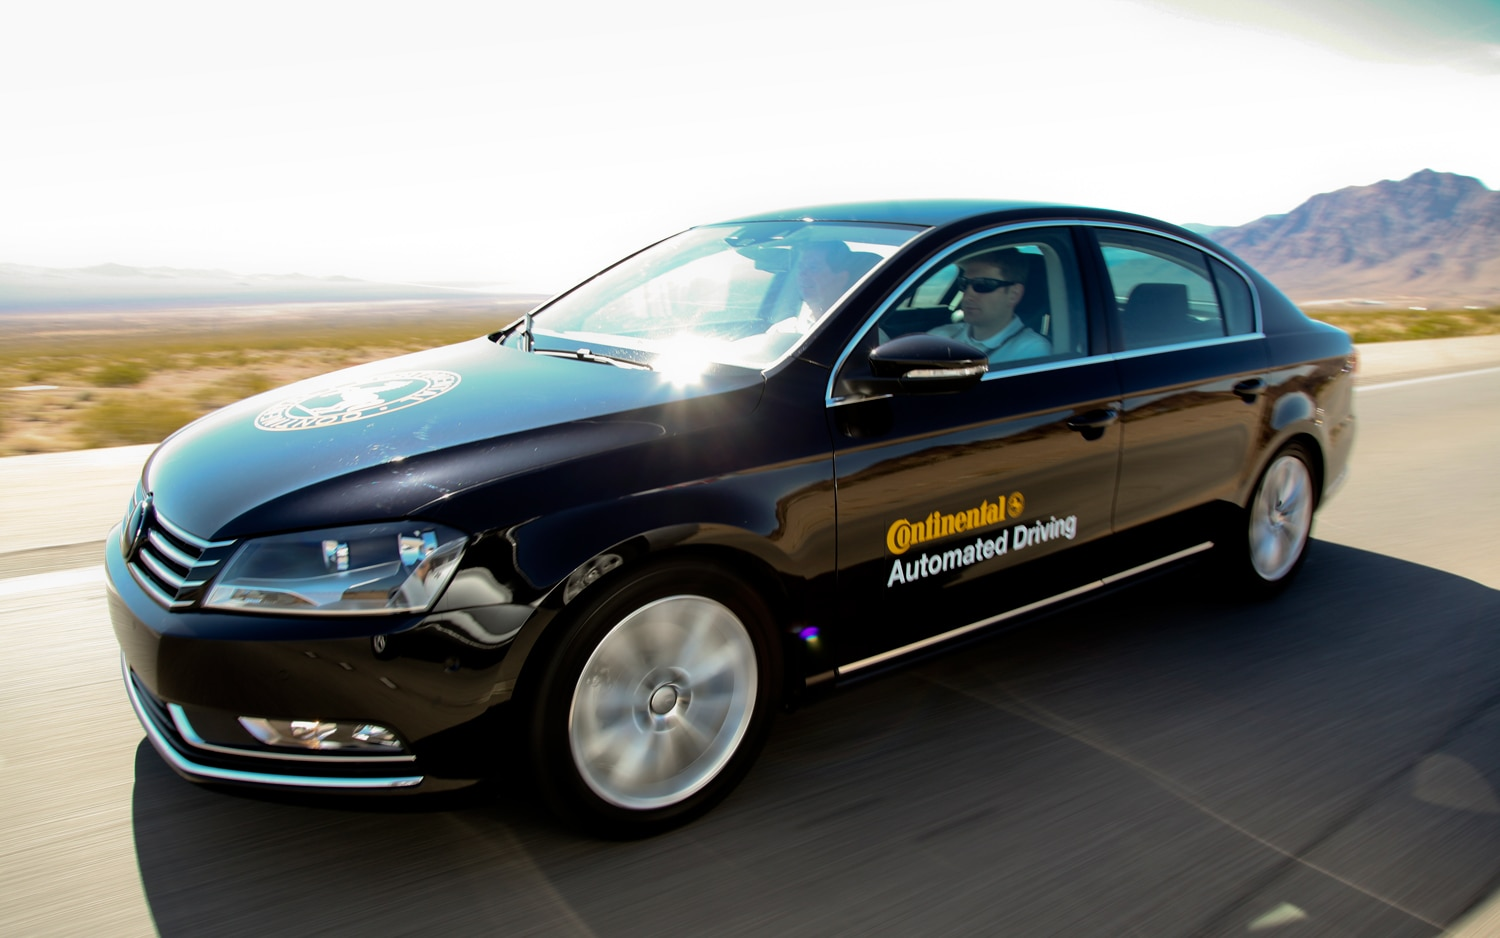 Volkswagen Passat Continental Automated Driving Car In Motion1